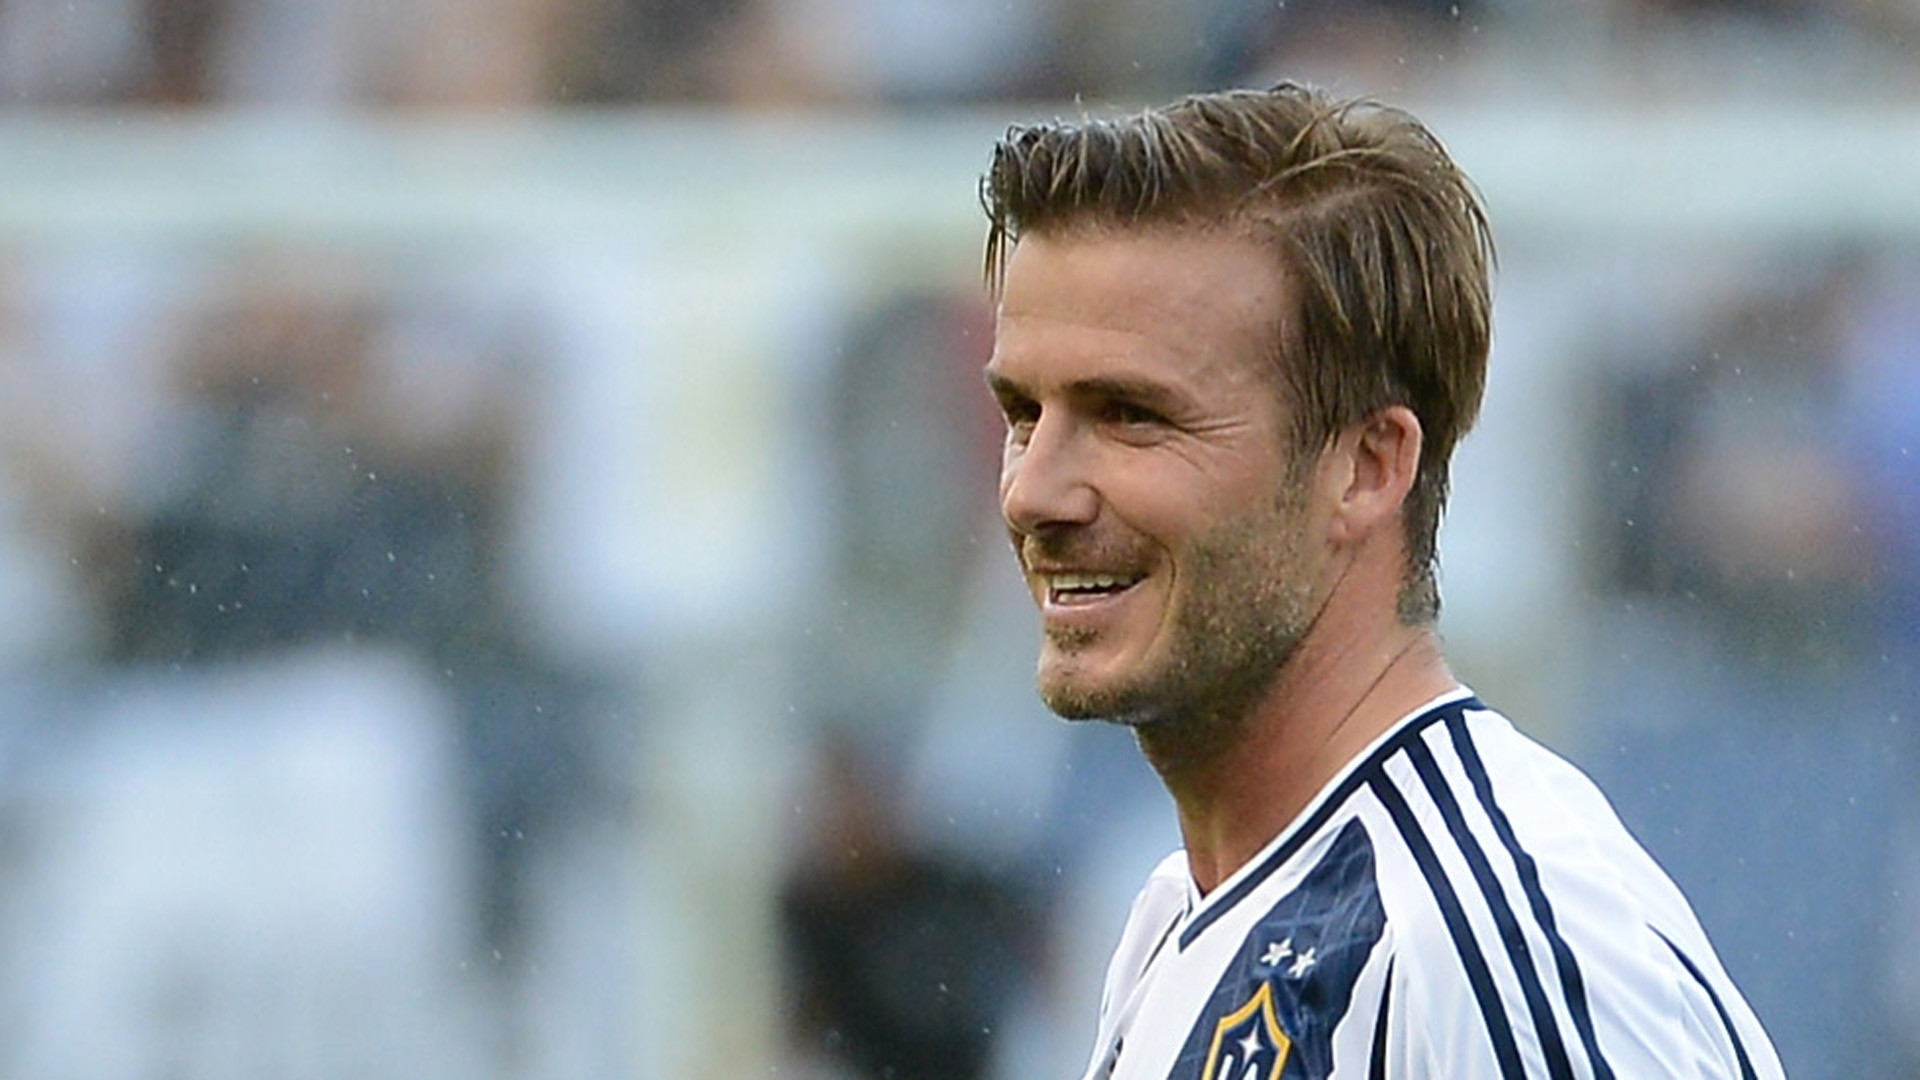 Res: 1920x1080, David Beckham LA Galaxy 12012012